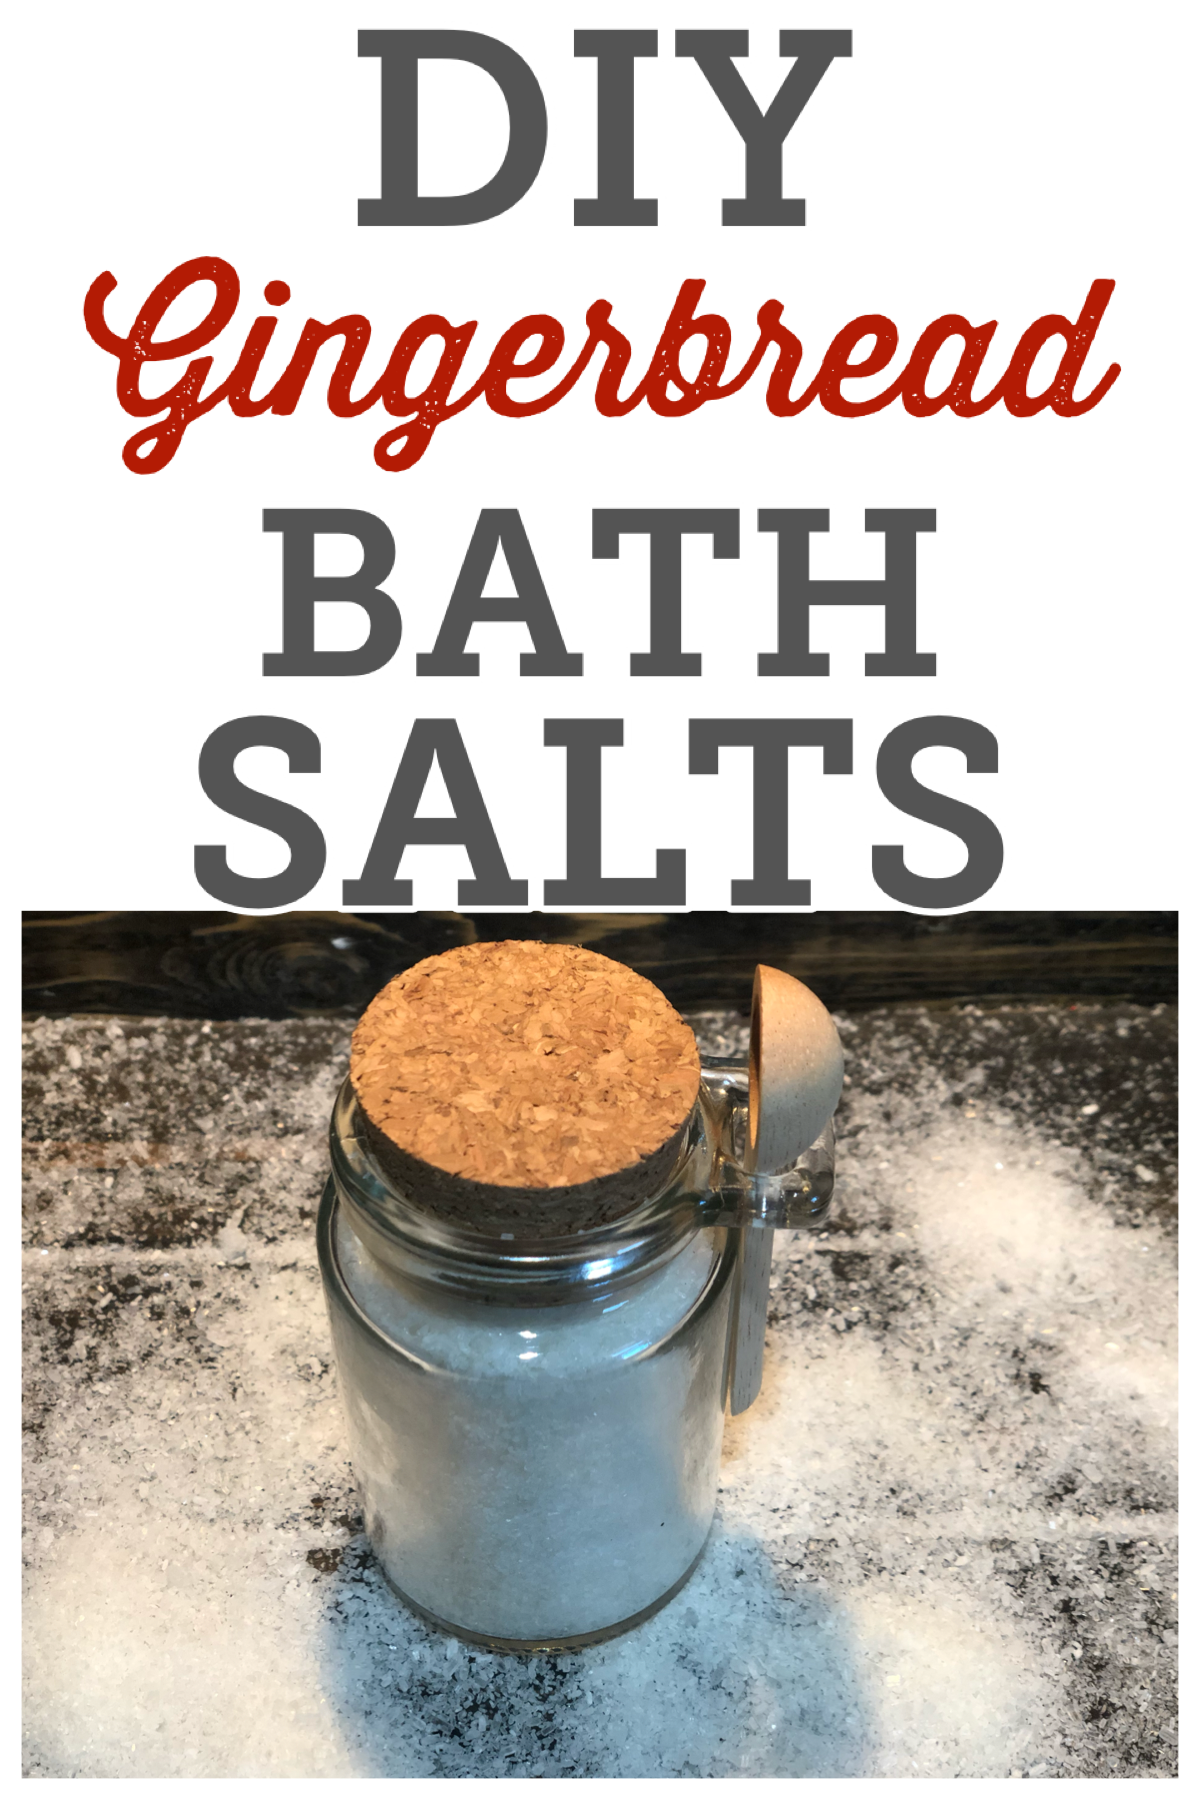 DIY Gingerbread Bath Salts, this homemade gift can be made in 5 minutes right in your kitchen! FrugallyFantastic.com